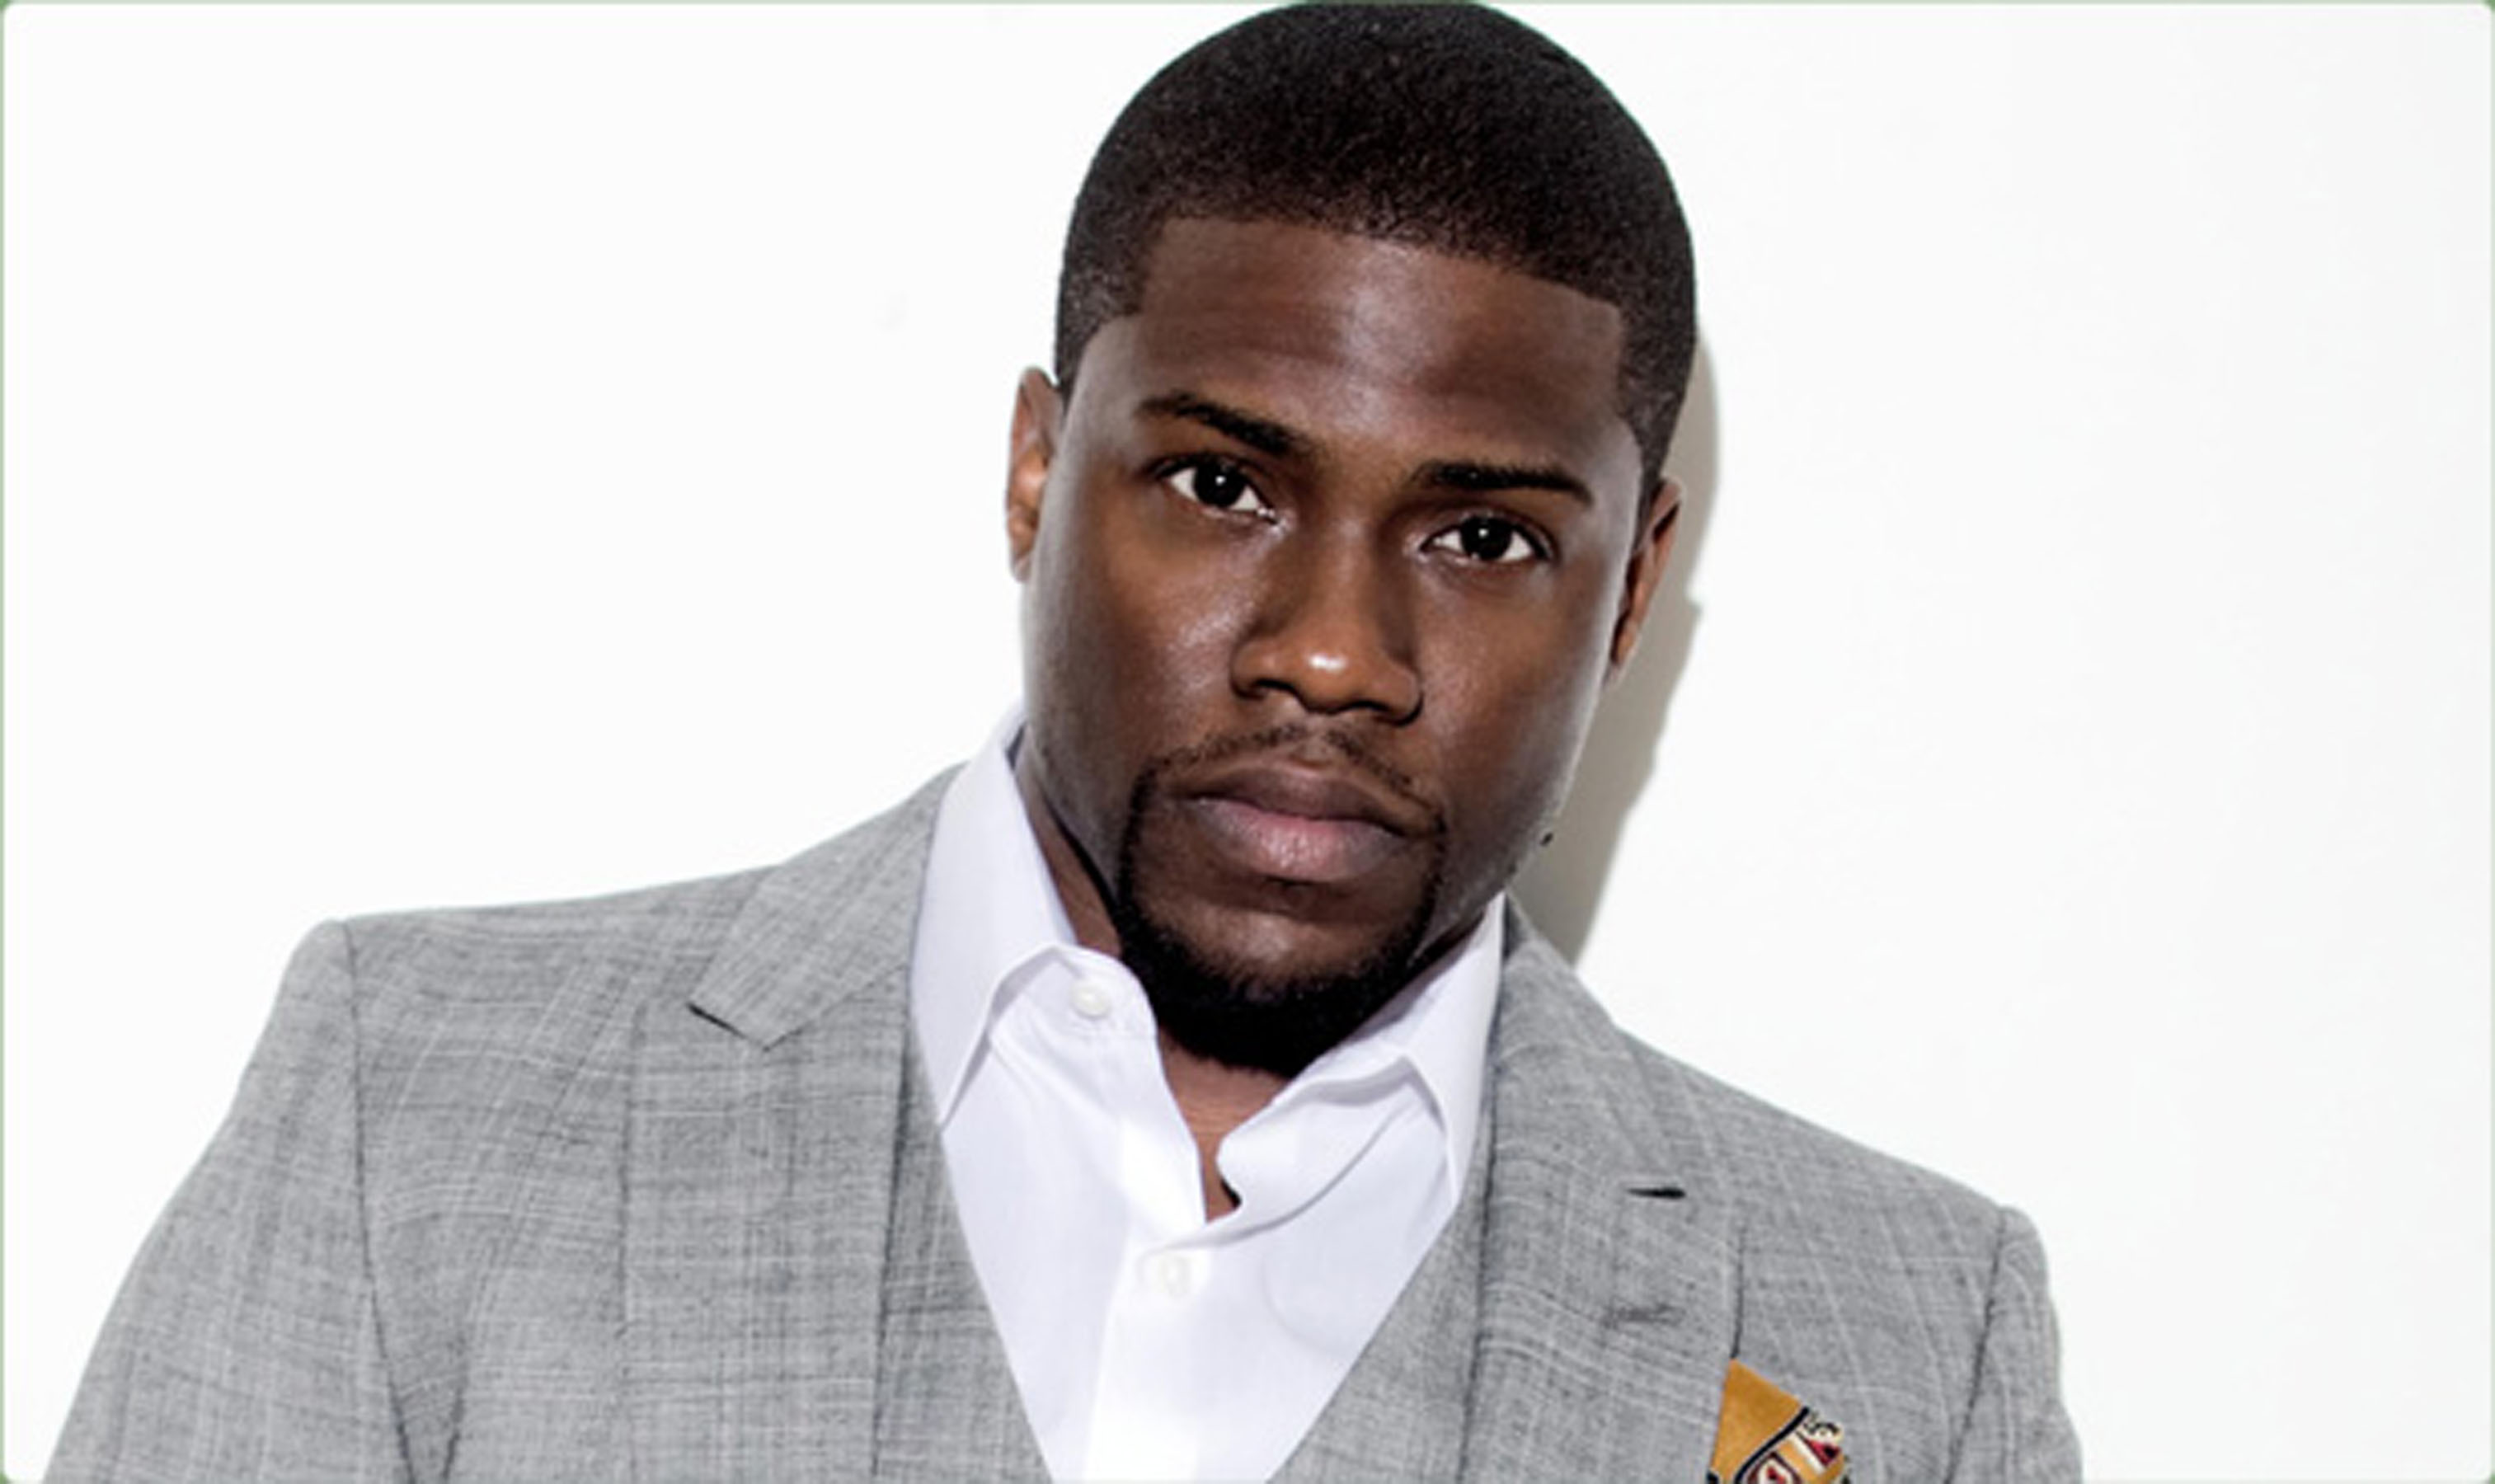 Kevin Hart's ex wife Torrie claims he cheated on her with latest spouse Eniko Parrish